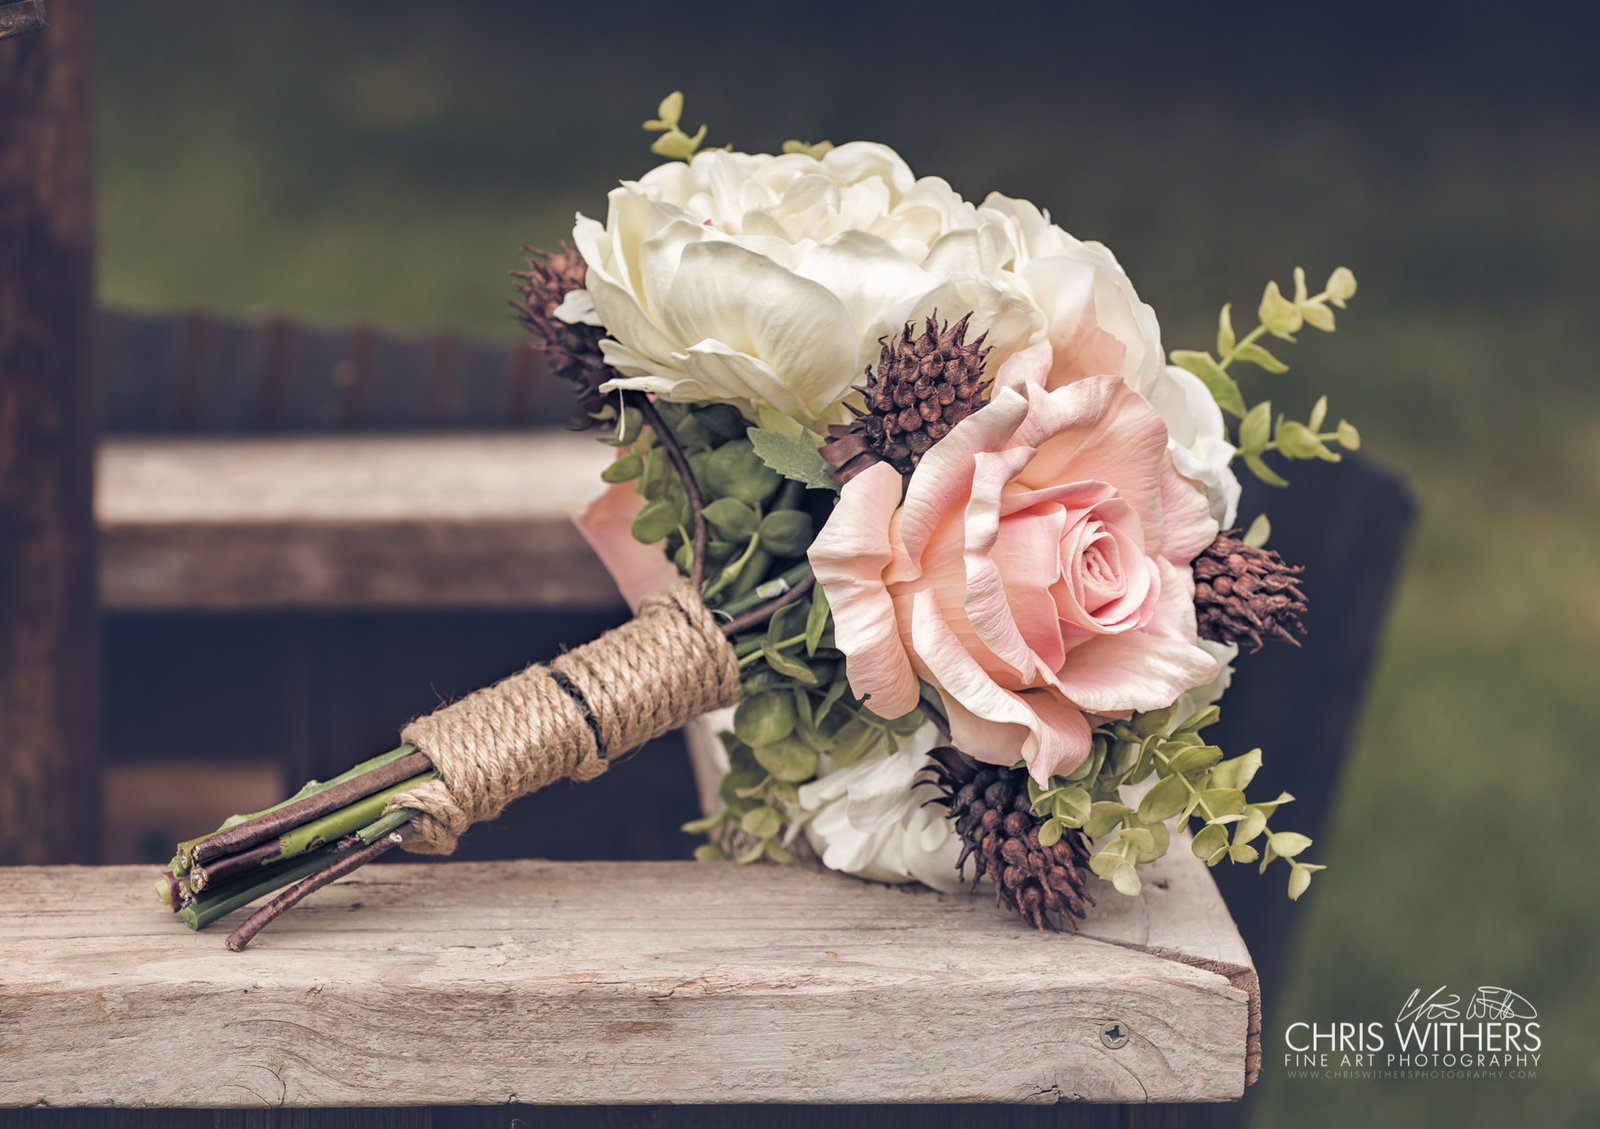 Springfield Illinois Wedding Photographer - Chris Withers Photography (42 of 159)